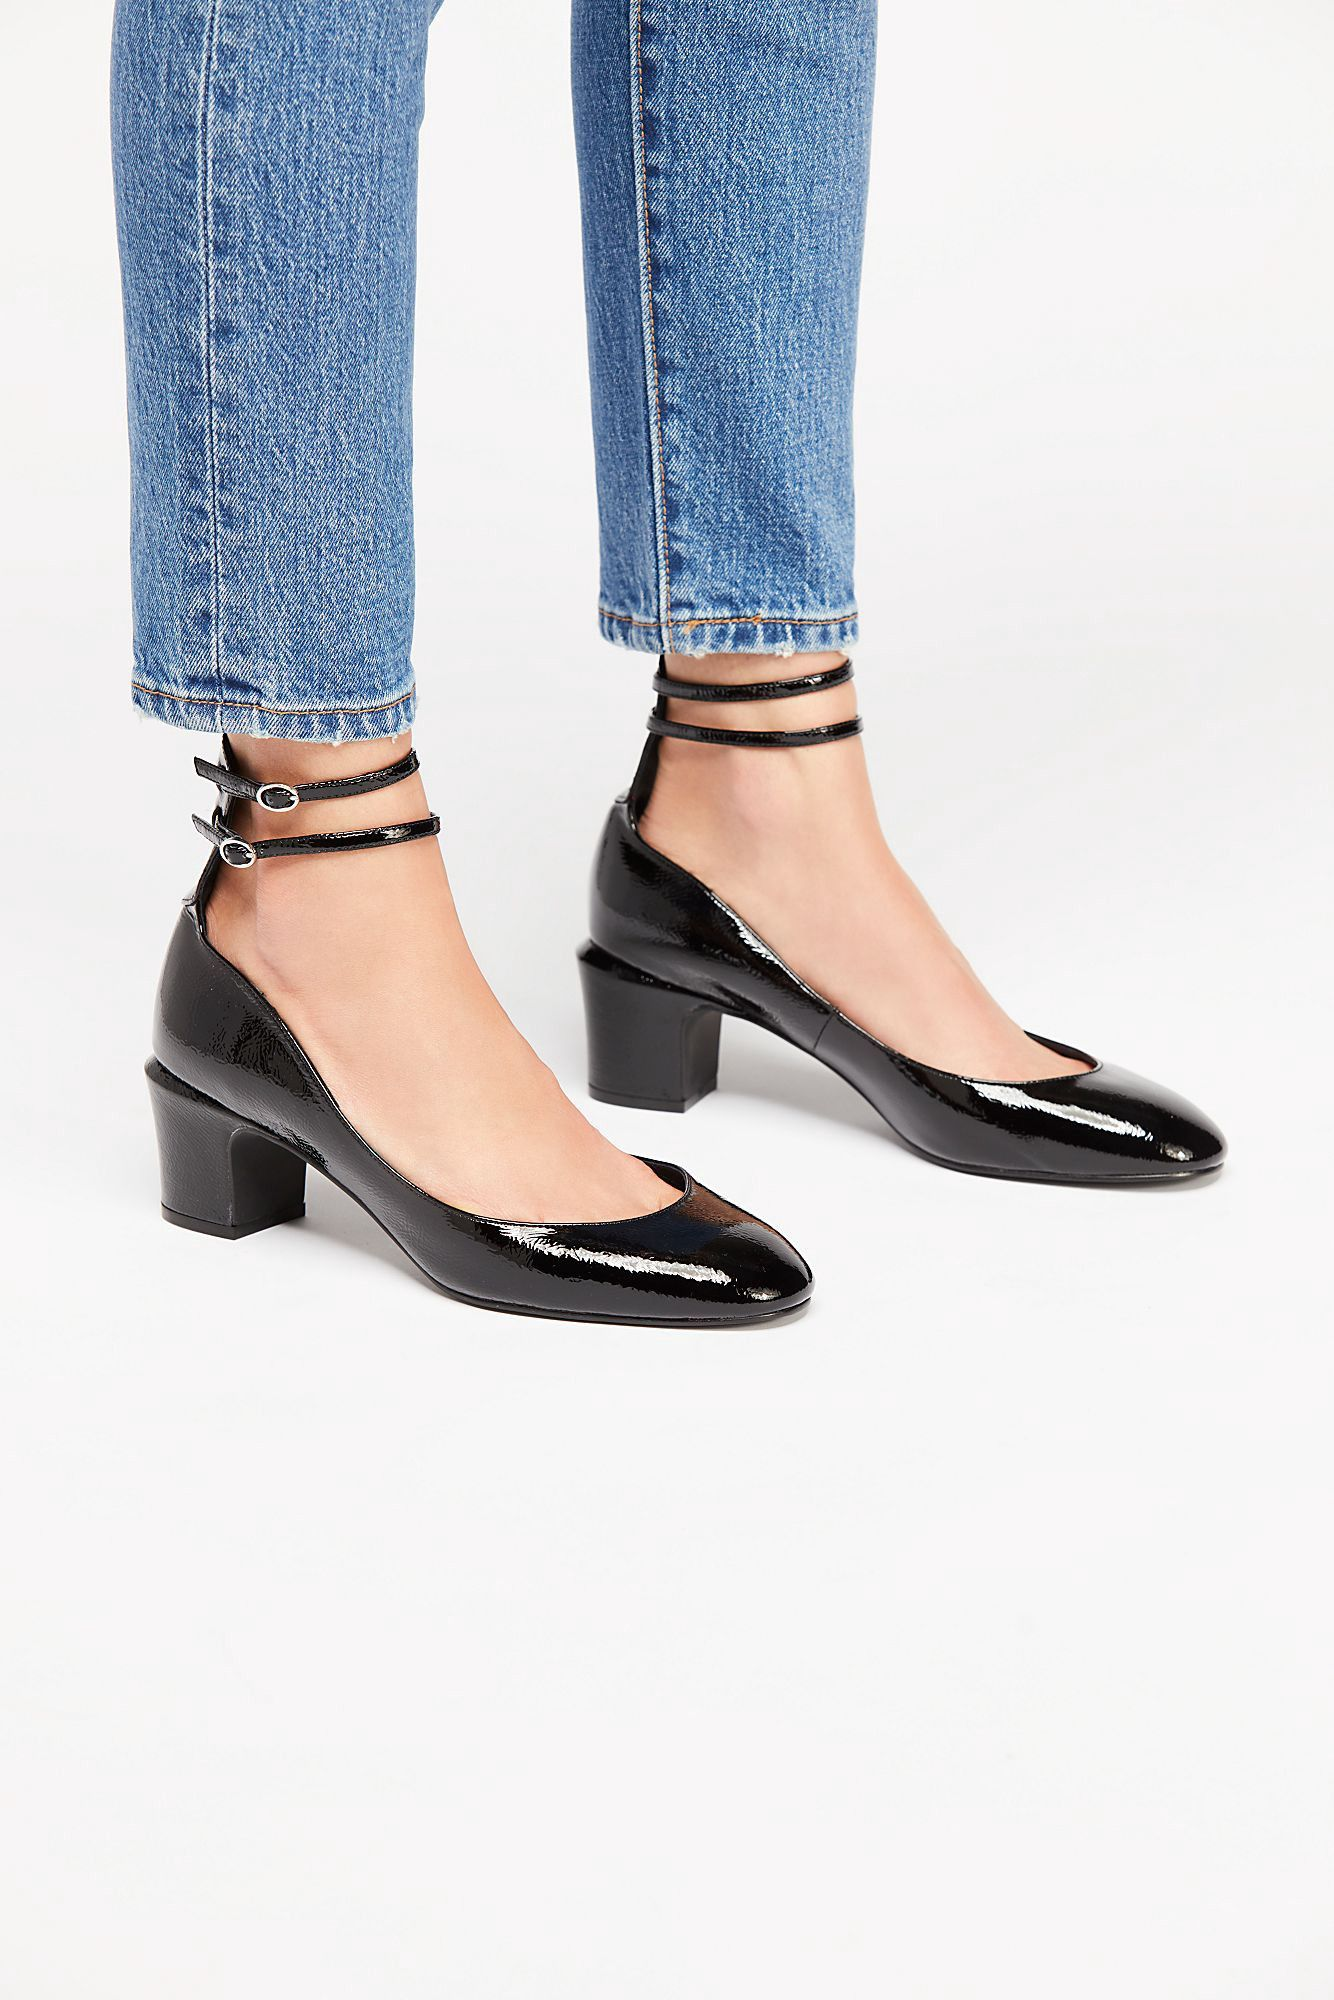 aa63cccf1a7 Free People Lana Block Heel - Silver Mirror 36 Euro | Products ...